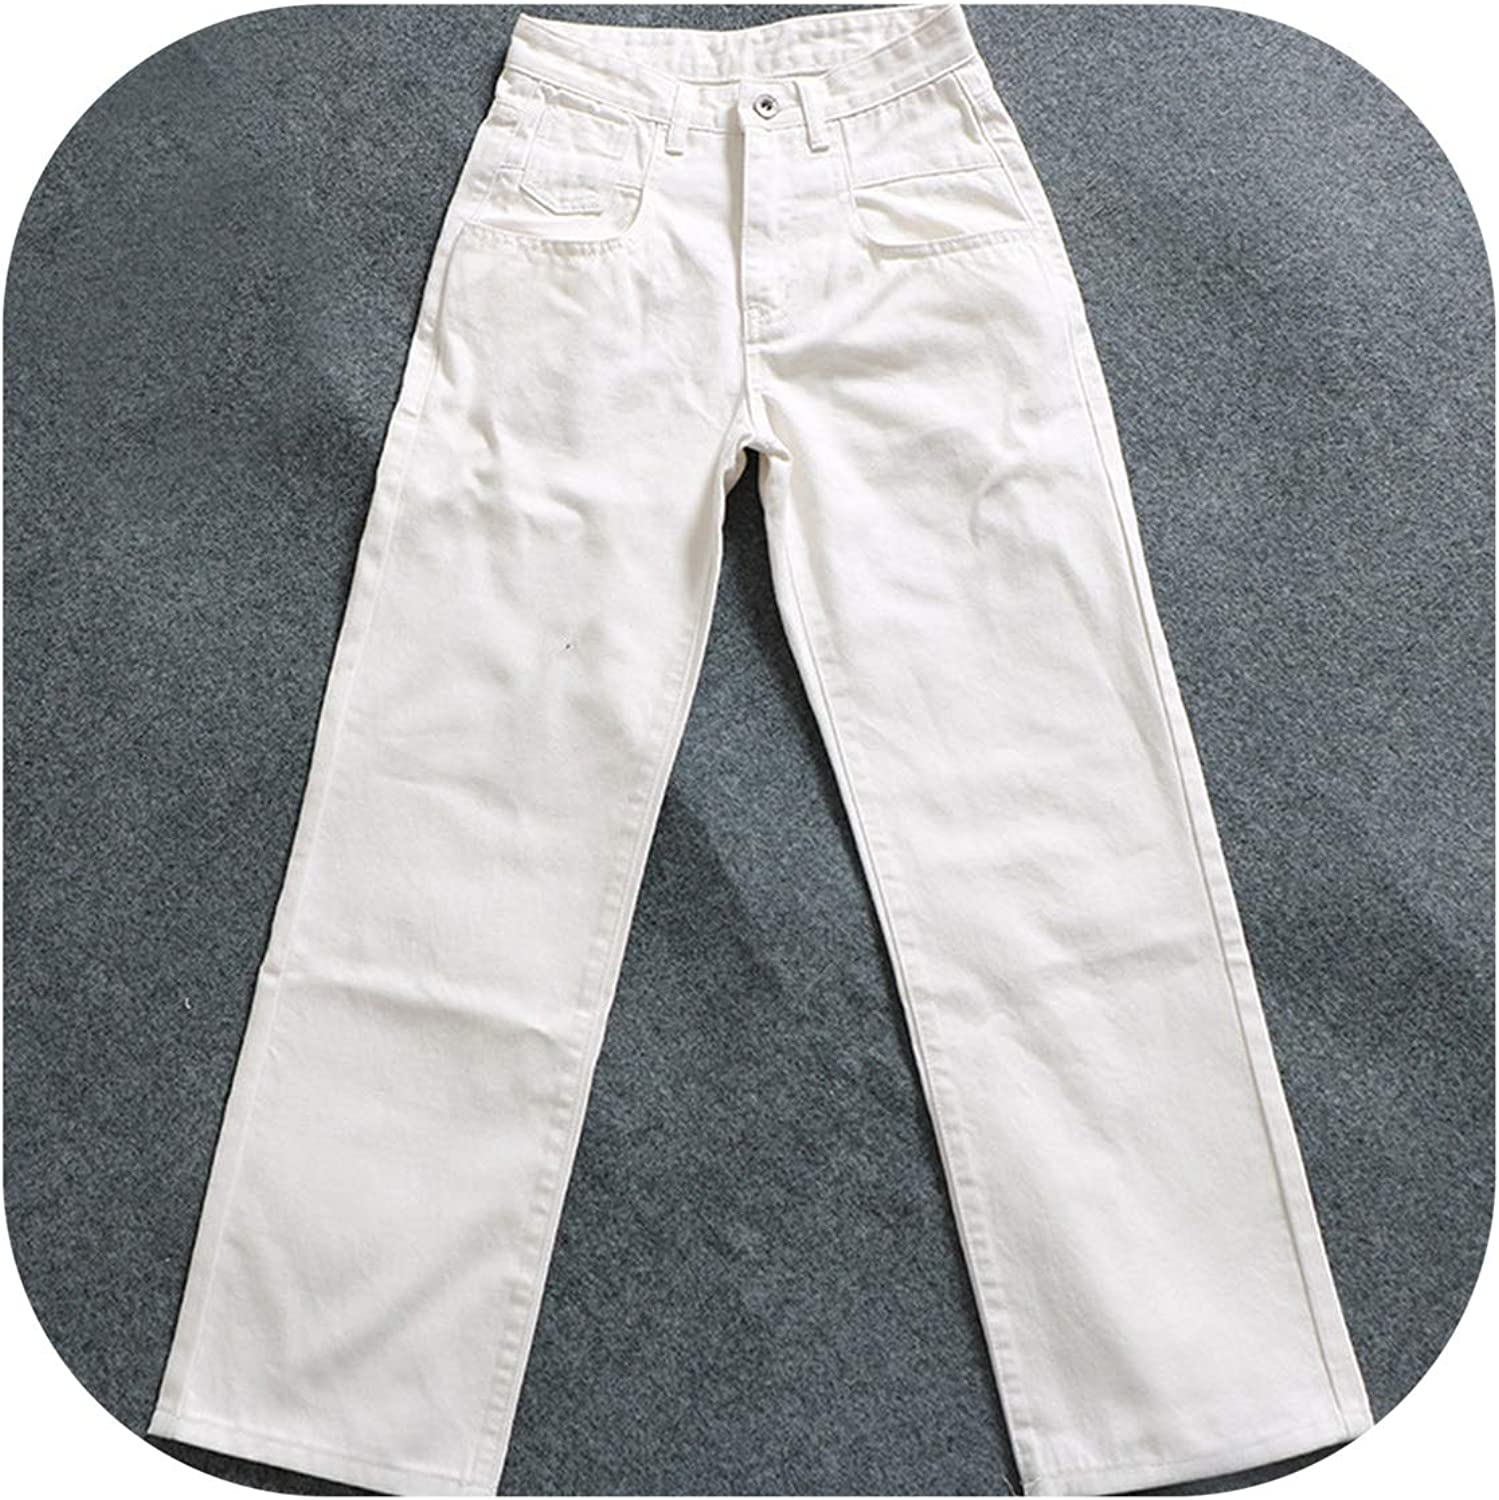 Small Thumb Women Jeans Wide Leg Casual Loose Vintage bluee White Trousers Oversize Denim Pants